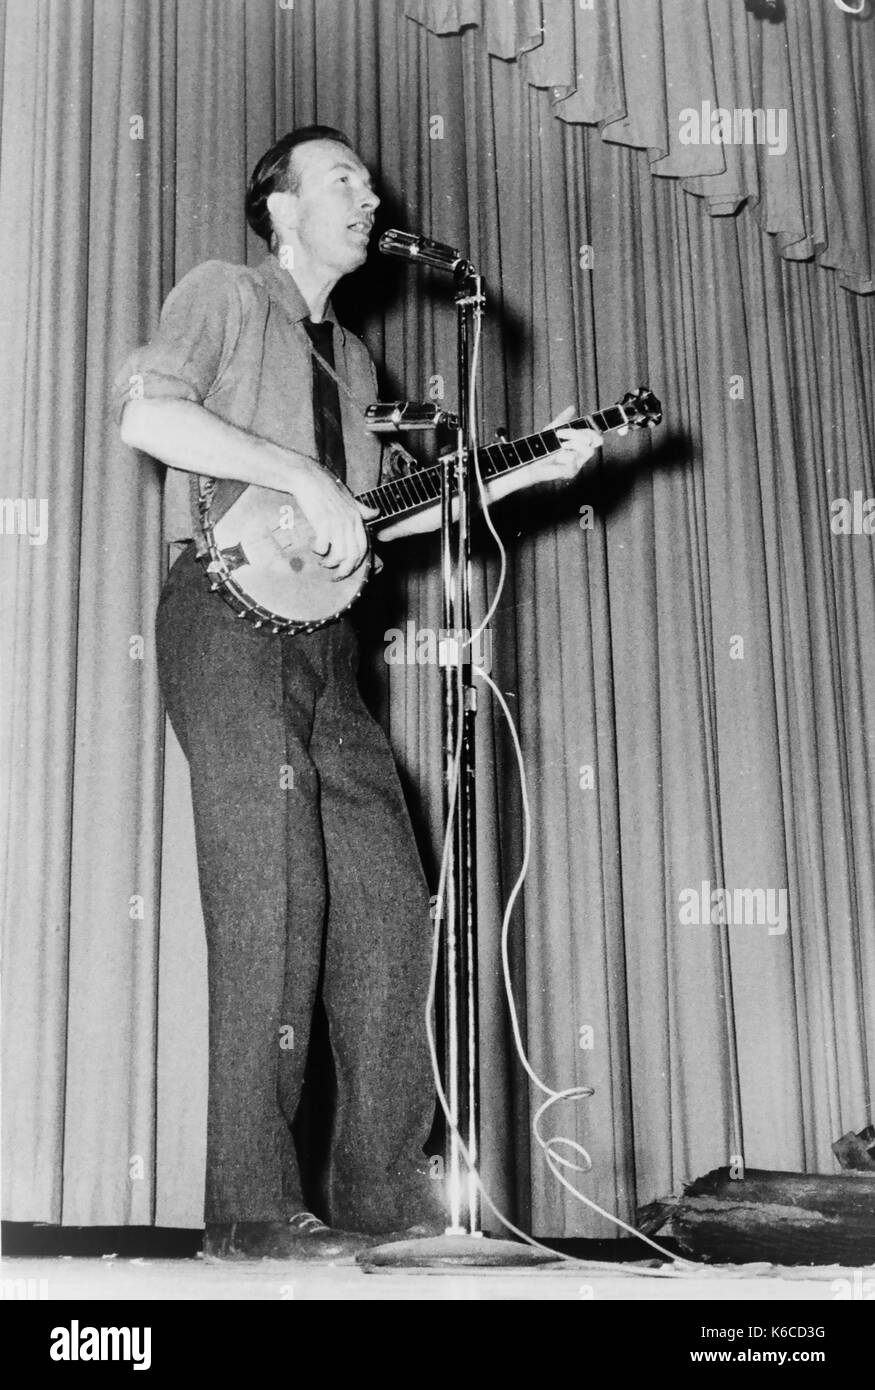 PETE SEEGER (1919-2014) American folk musician about 1944 - Stock Image